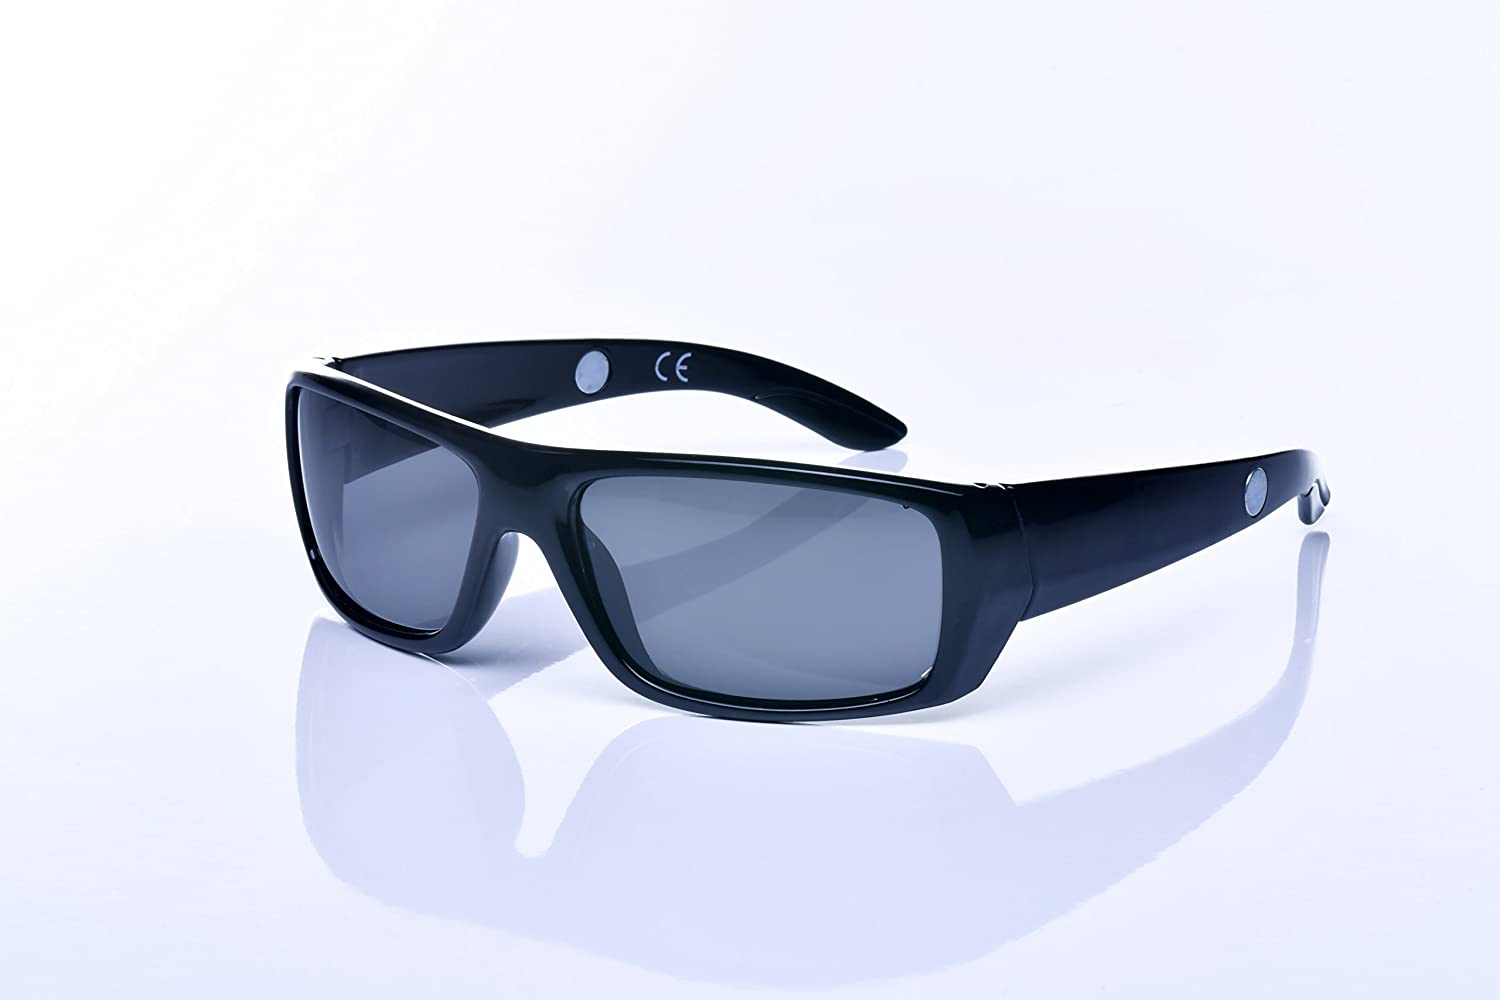 Diamond Vision HD - premium sunglasses for men and women s2kso7JWlc